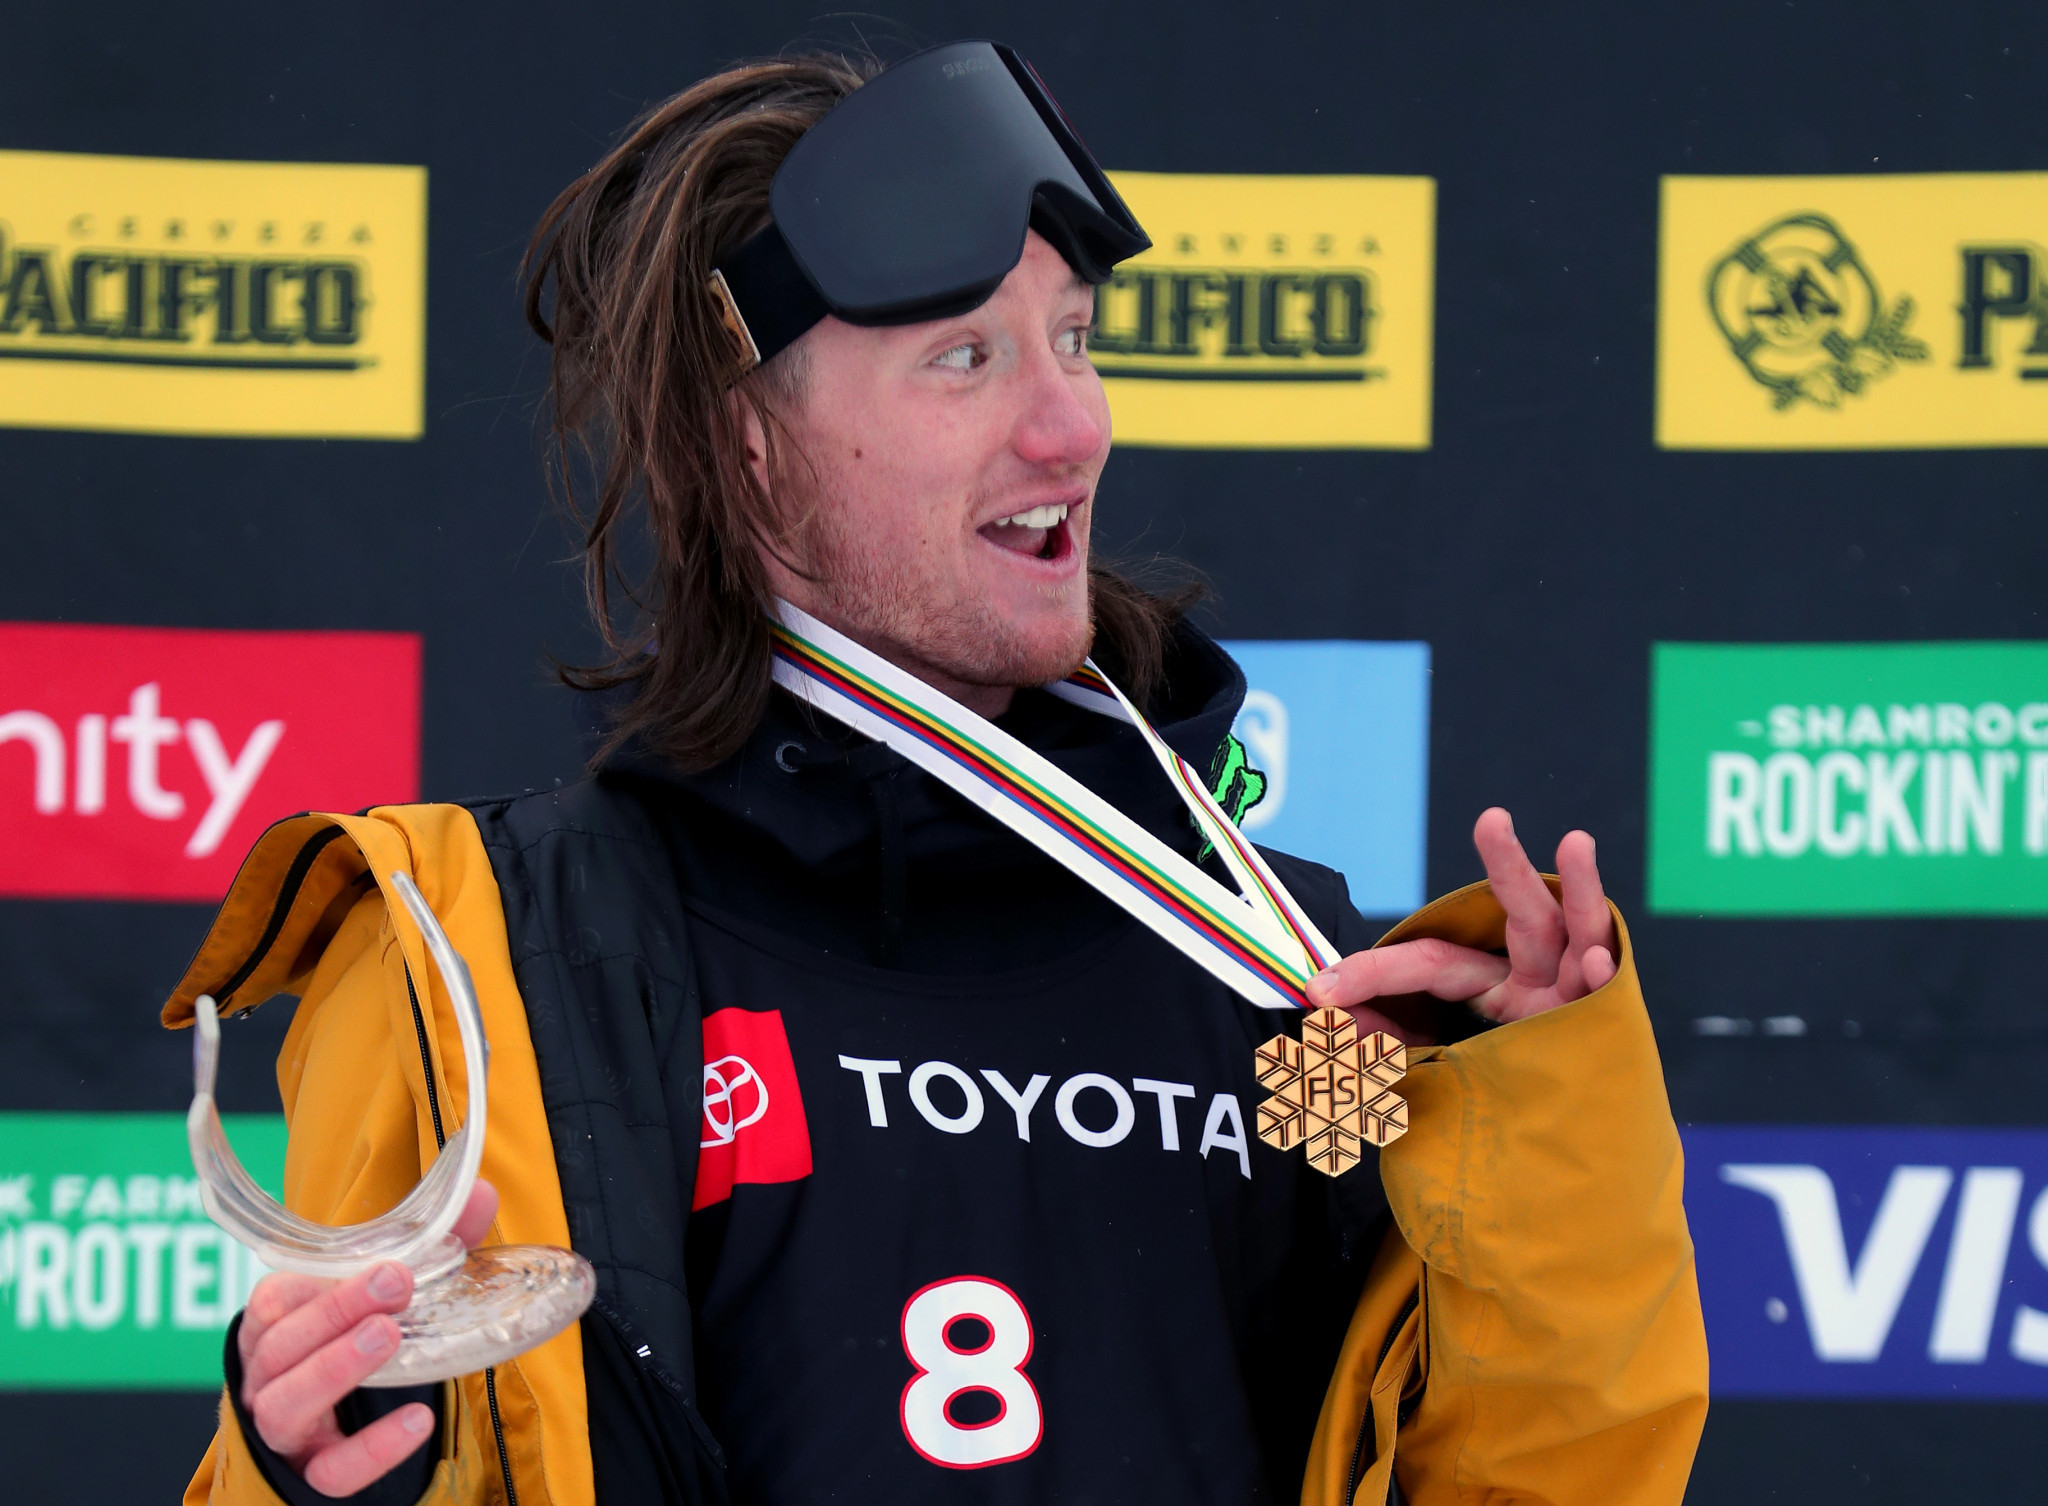 James Woods was crowned as ski slopestyle world champion ©Getty Images